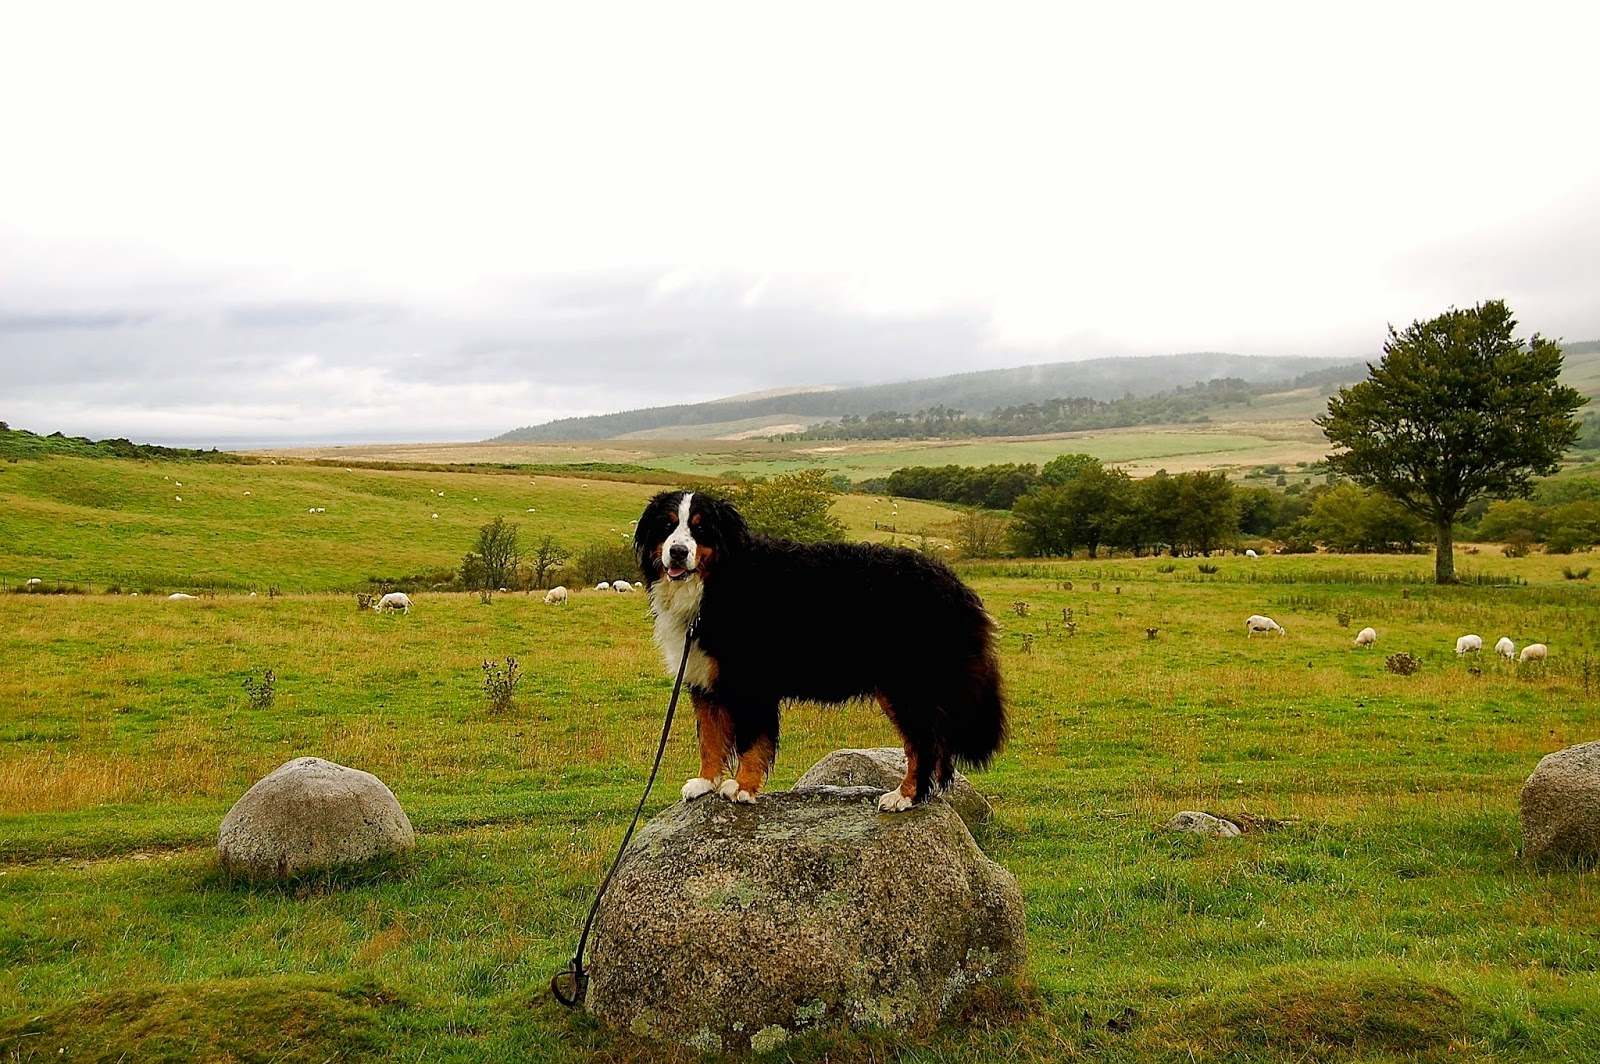 Mattie reenacting Fingal's dog at the Machrie Moor stone circles